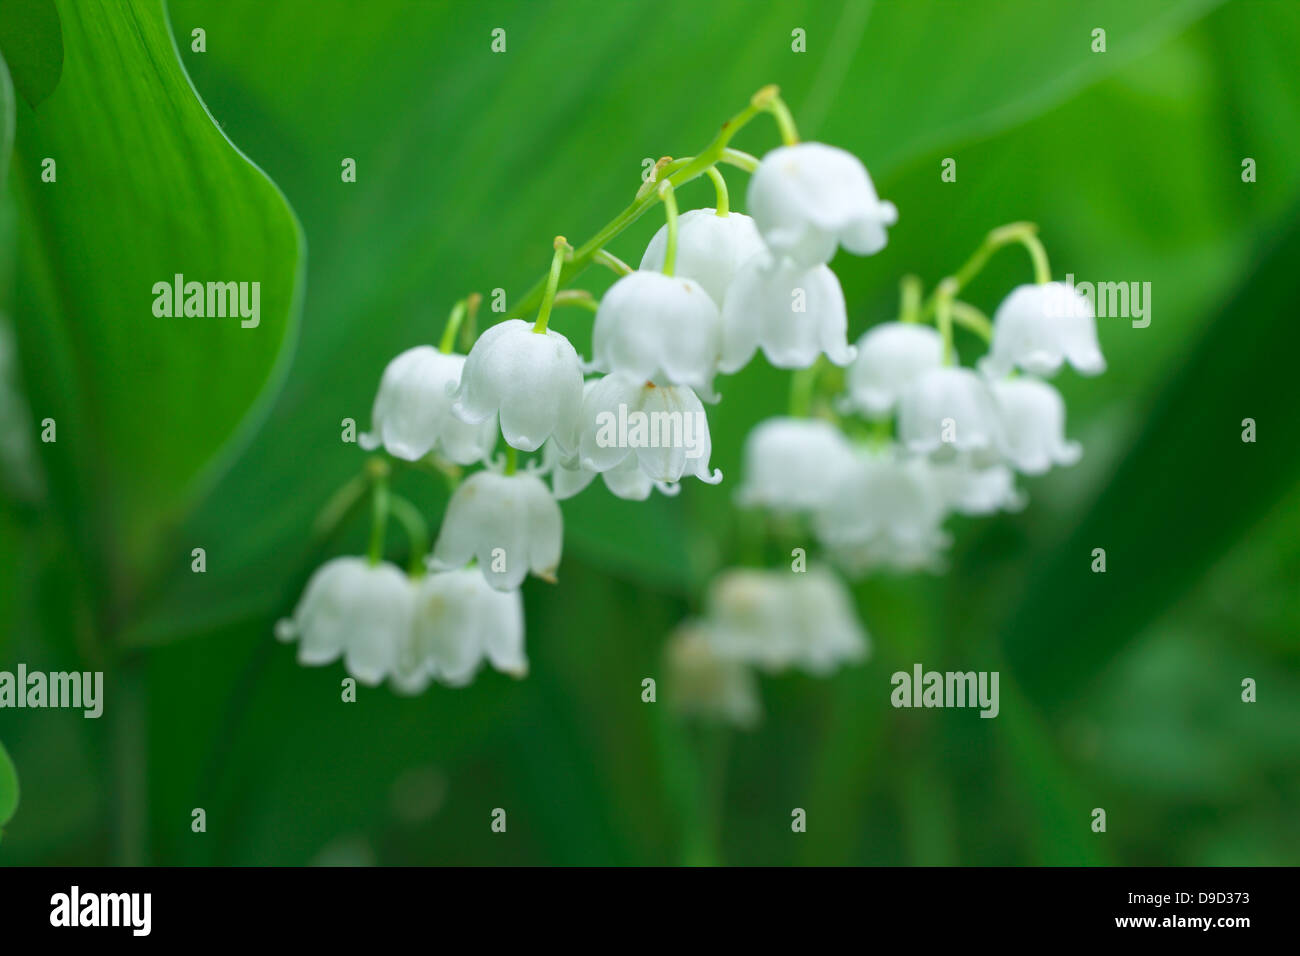 Lily of the valley flowers stock photo 57450935 alamy lily of the valley flowers izmirmasajfo